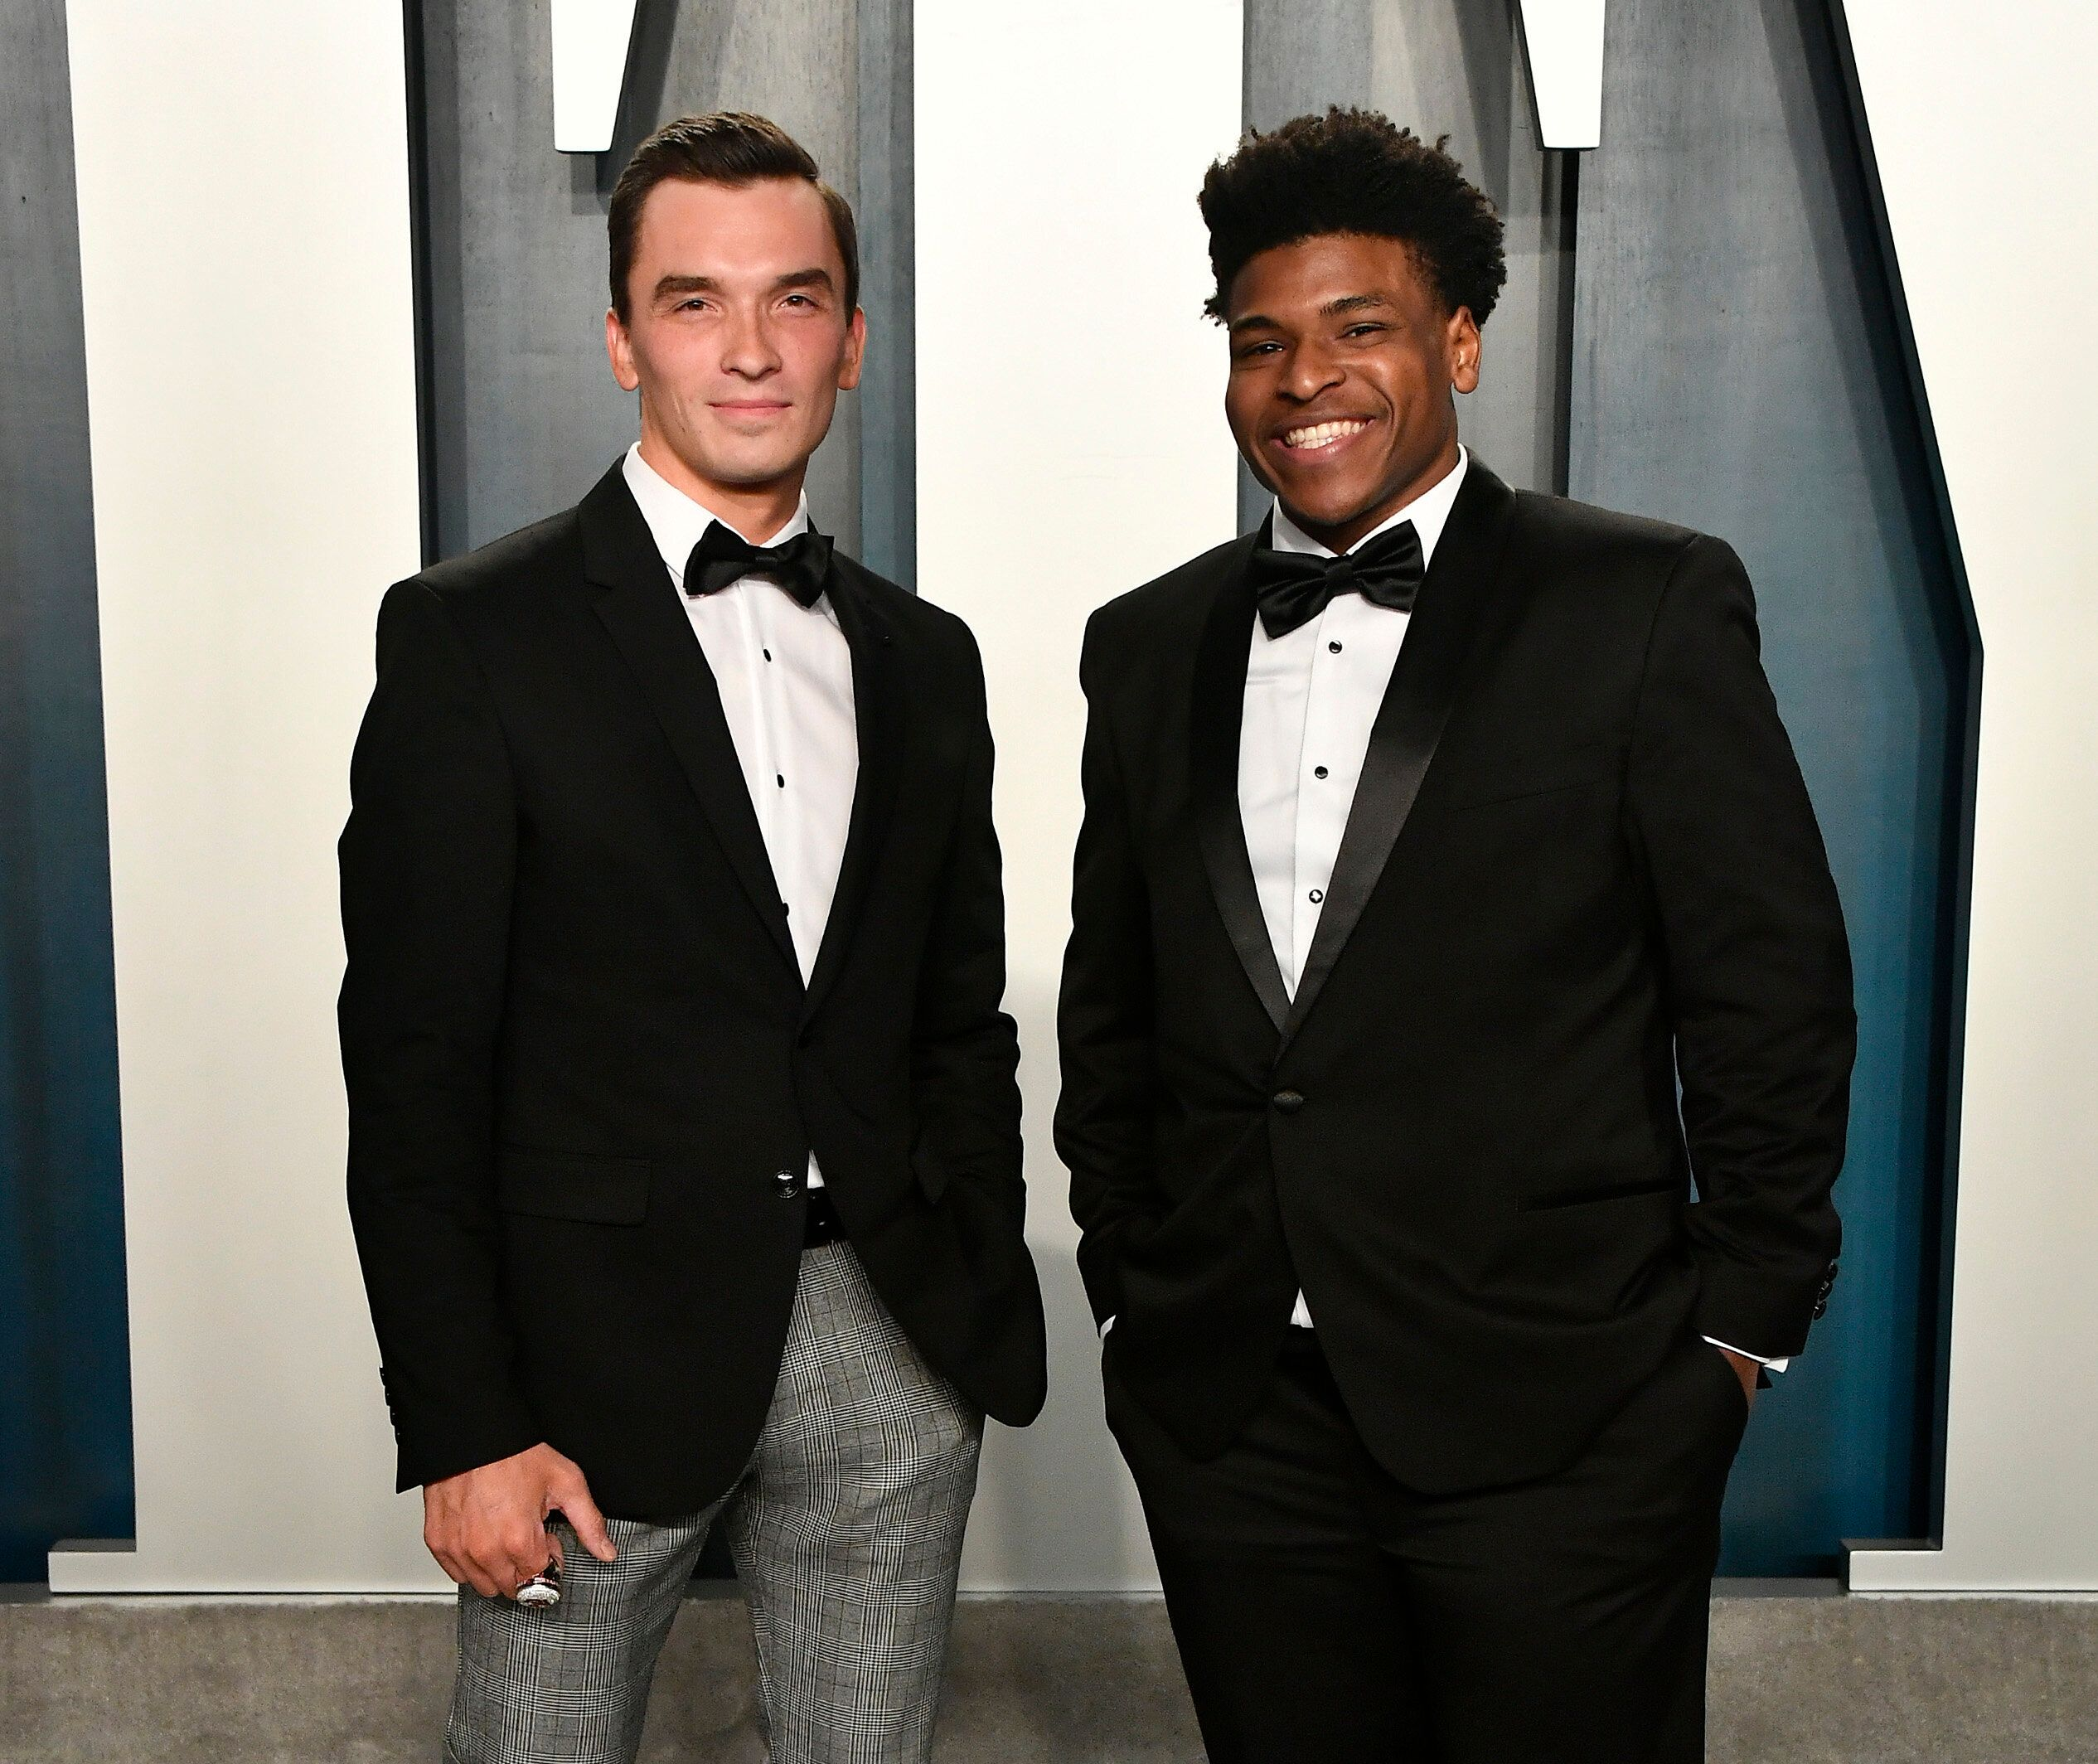 Jerry Harris (R) attends the 2020 Vanity Fair Oscar Party on Feb. 9 in Beverly Hills.